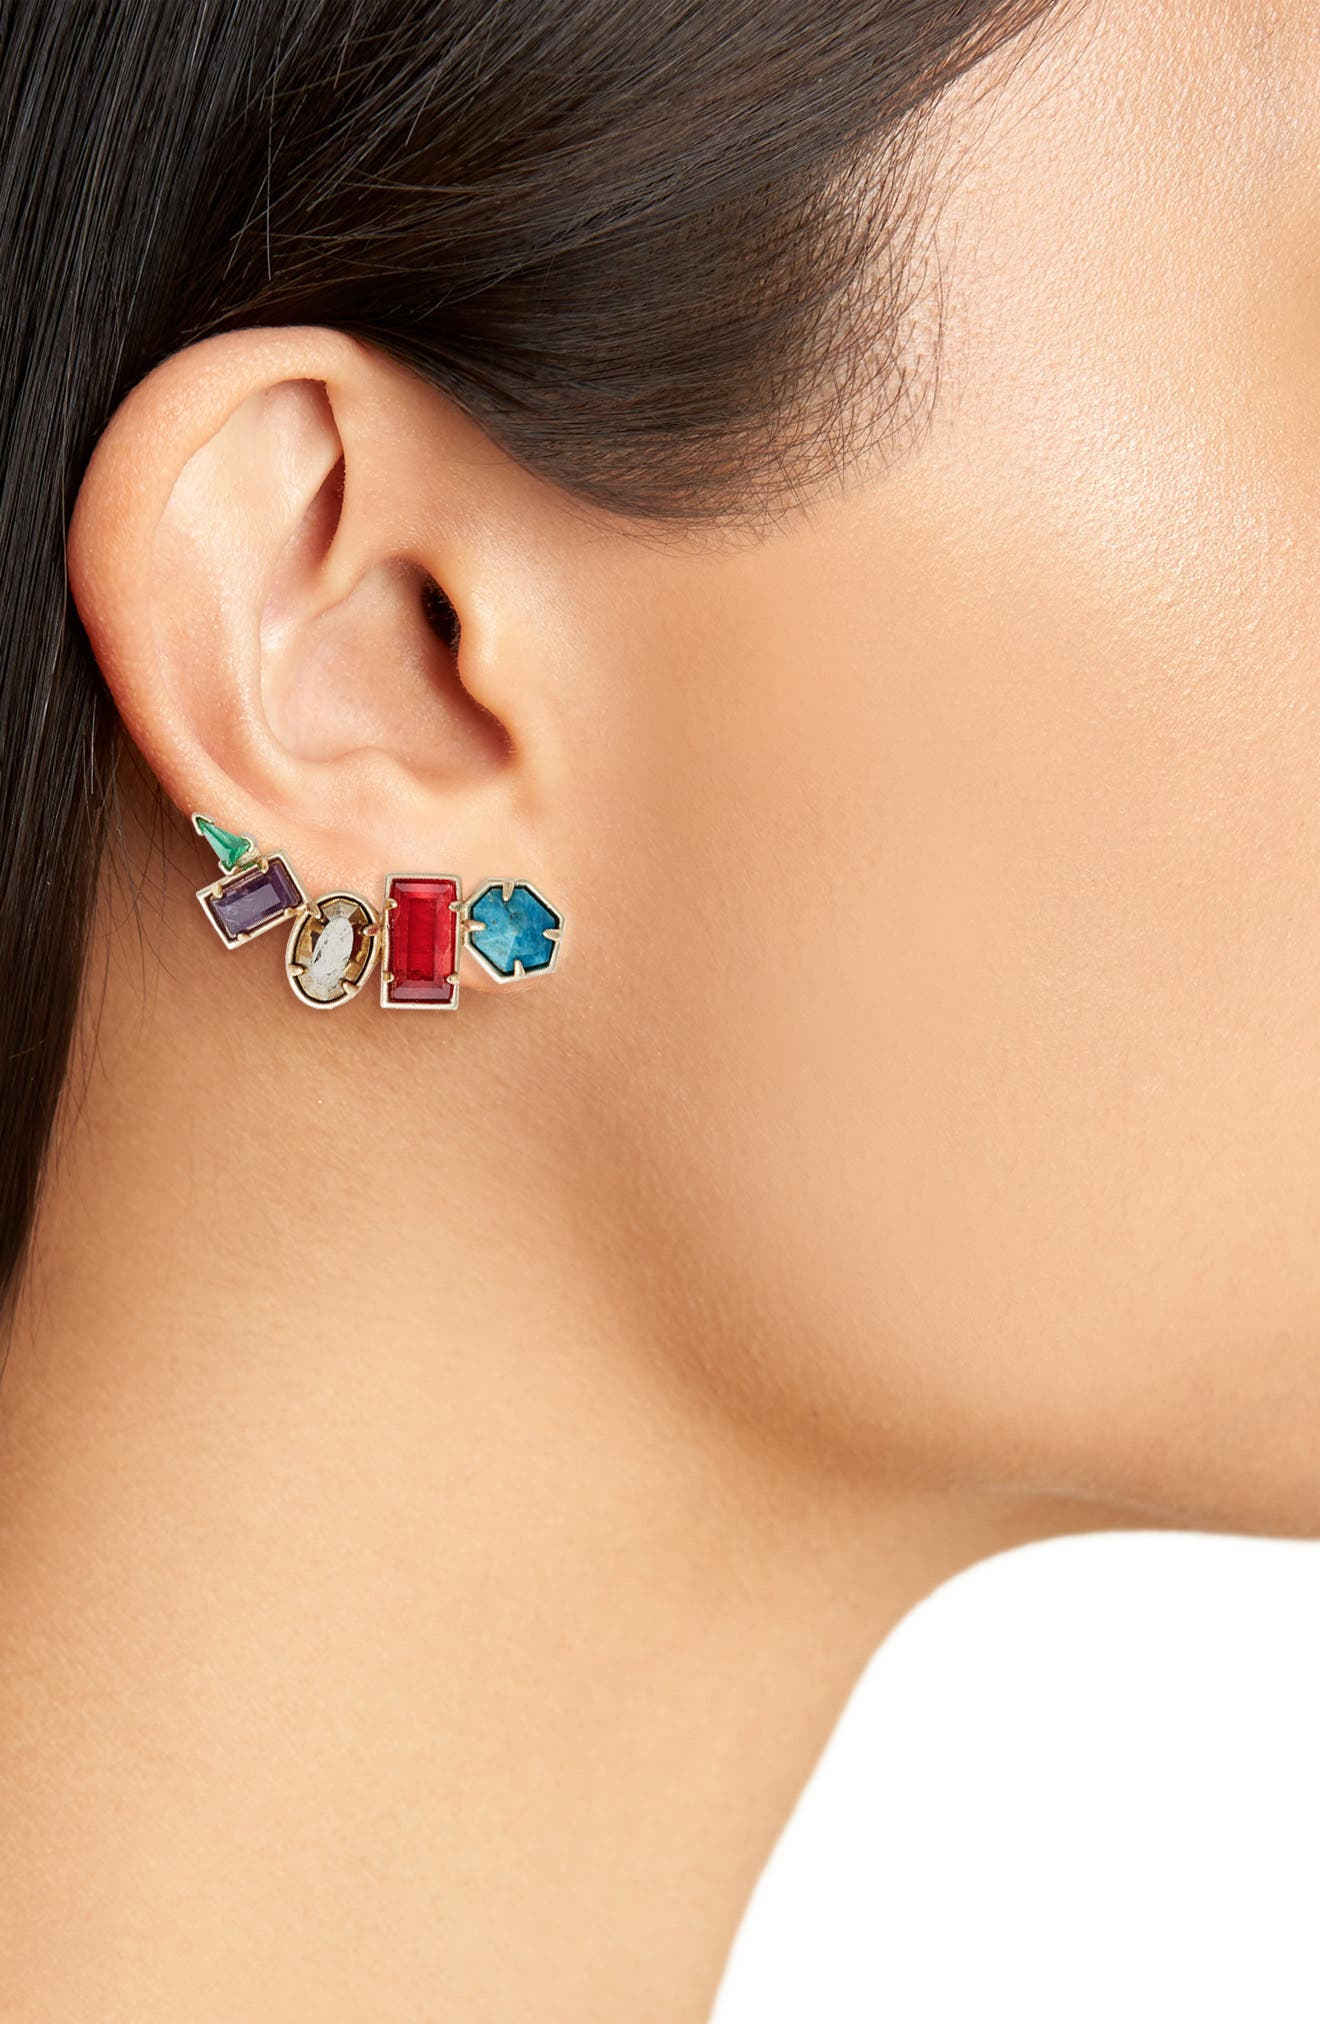 Frankie Ear Crawlers,                             Alternate thumbnail 2, color,                             Jewel Tone Mix/ Brass